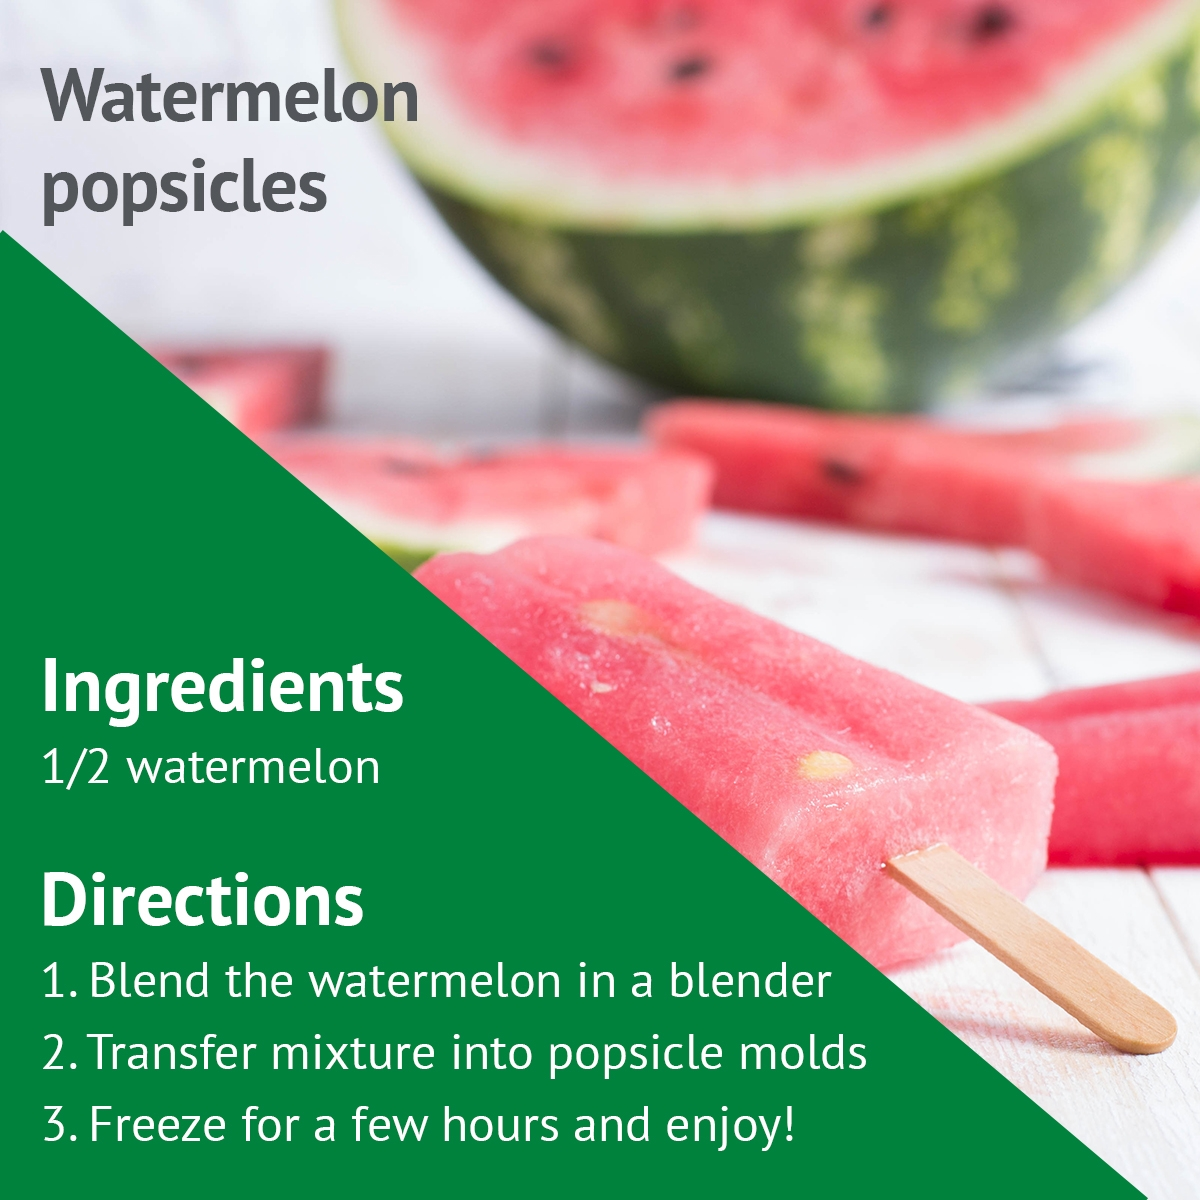 Watermelon popsicle recipe for Phelps Hospital